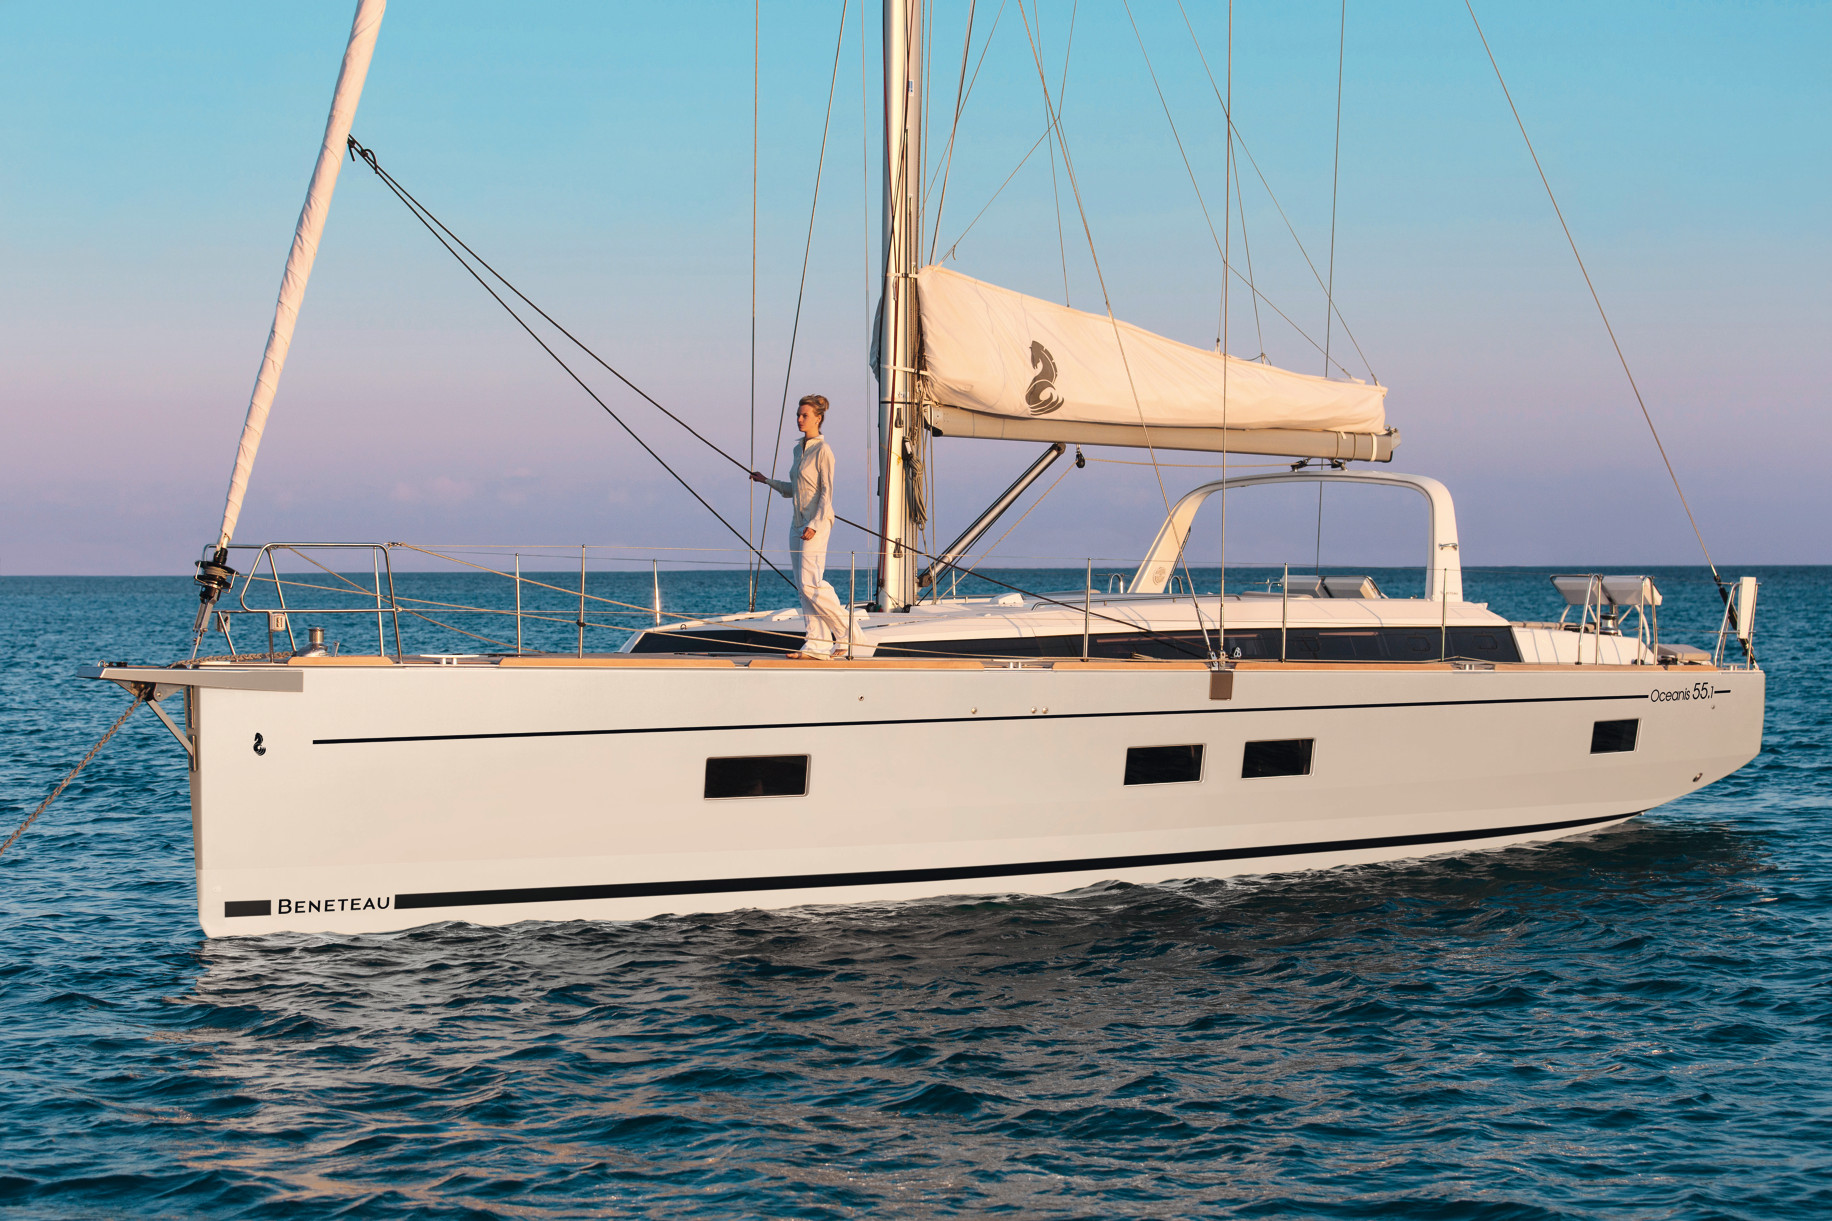 Beneteau Oceanis 55 1 New Amp Used Sailboats And